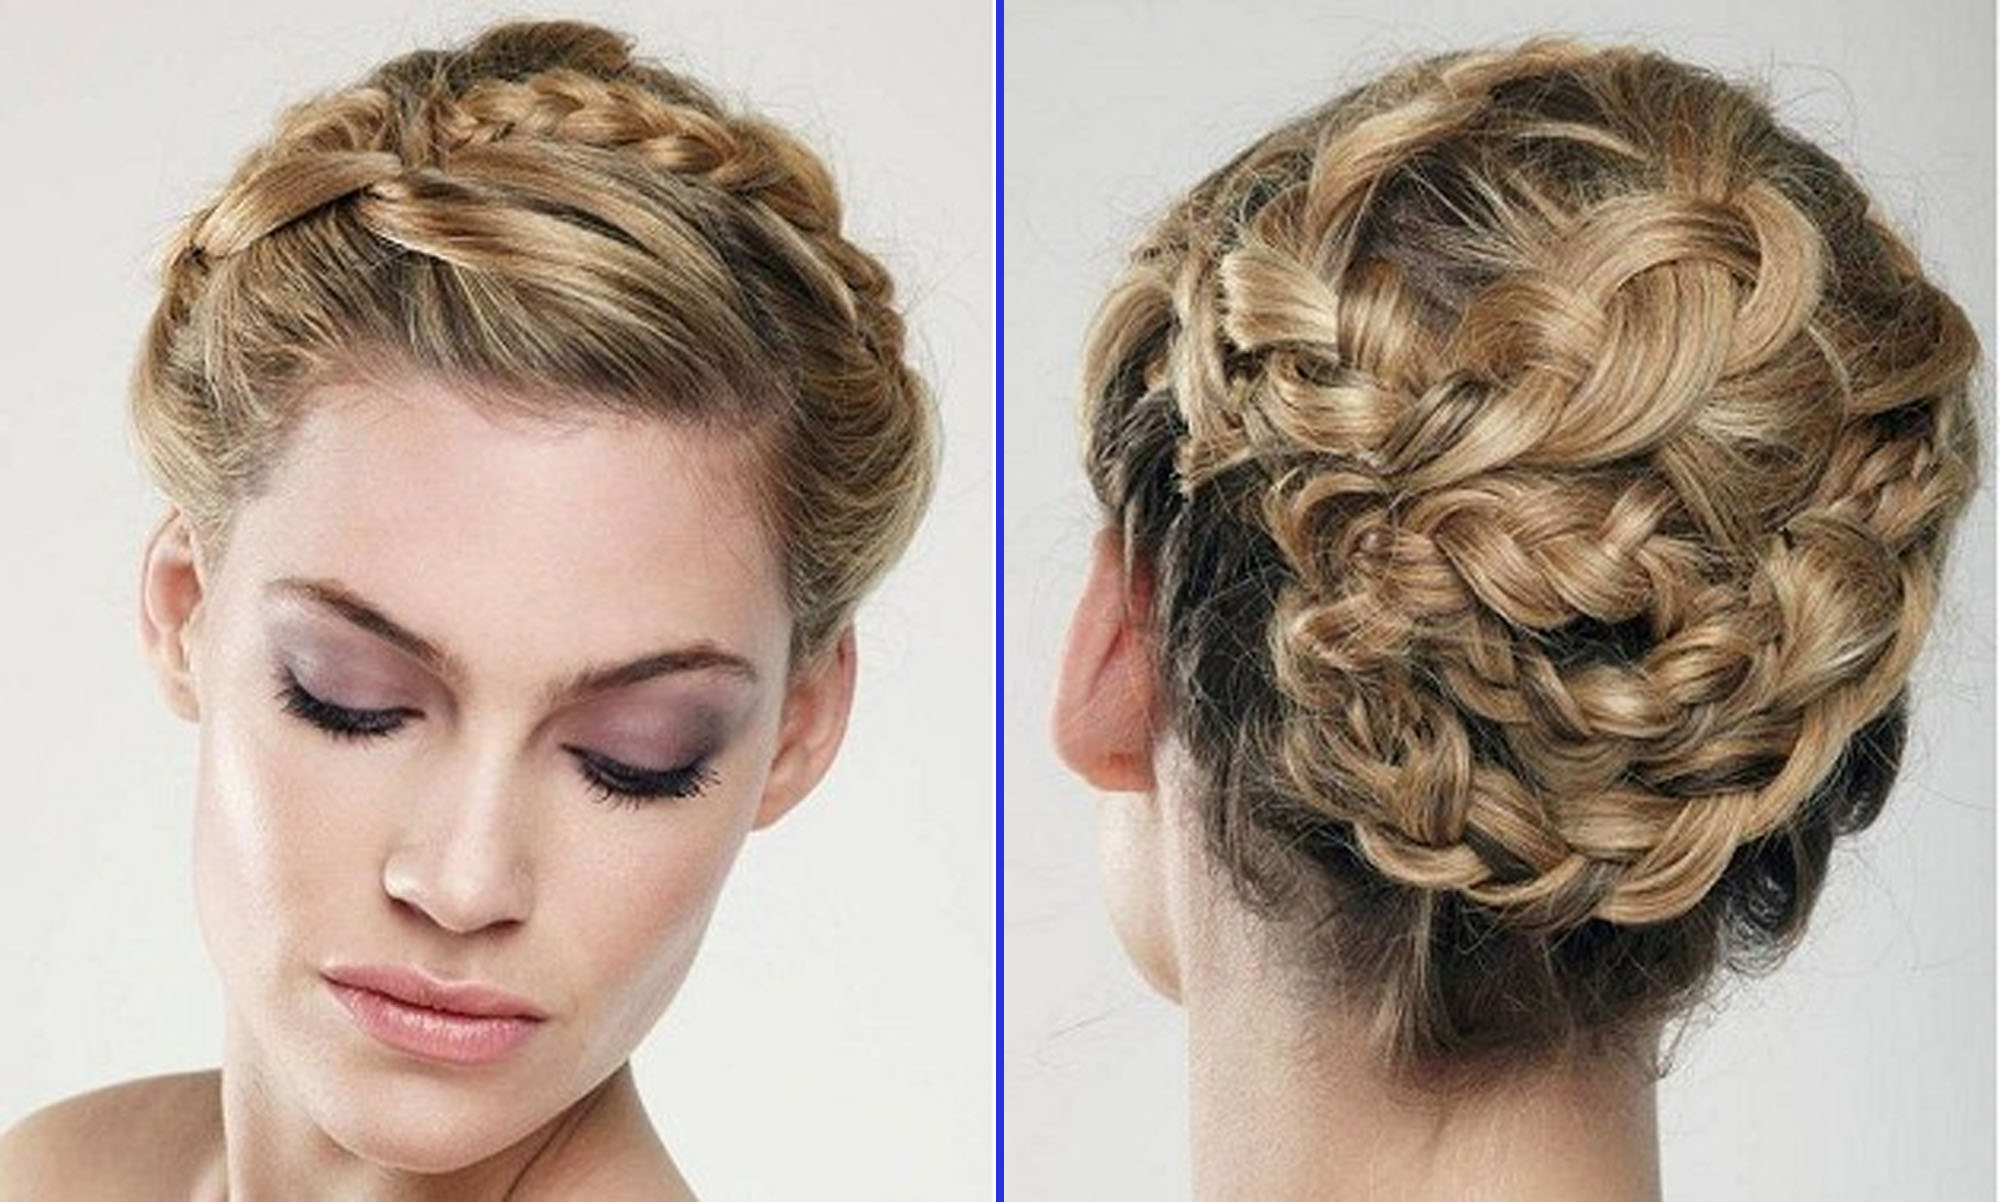 Weddings Hairstyles For Weddings Taking Place Between Different